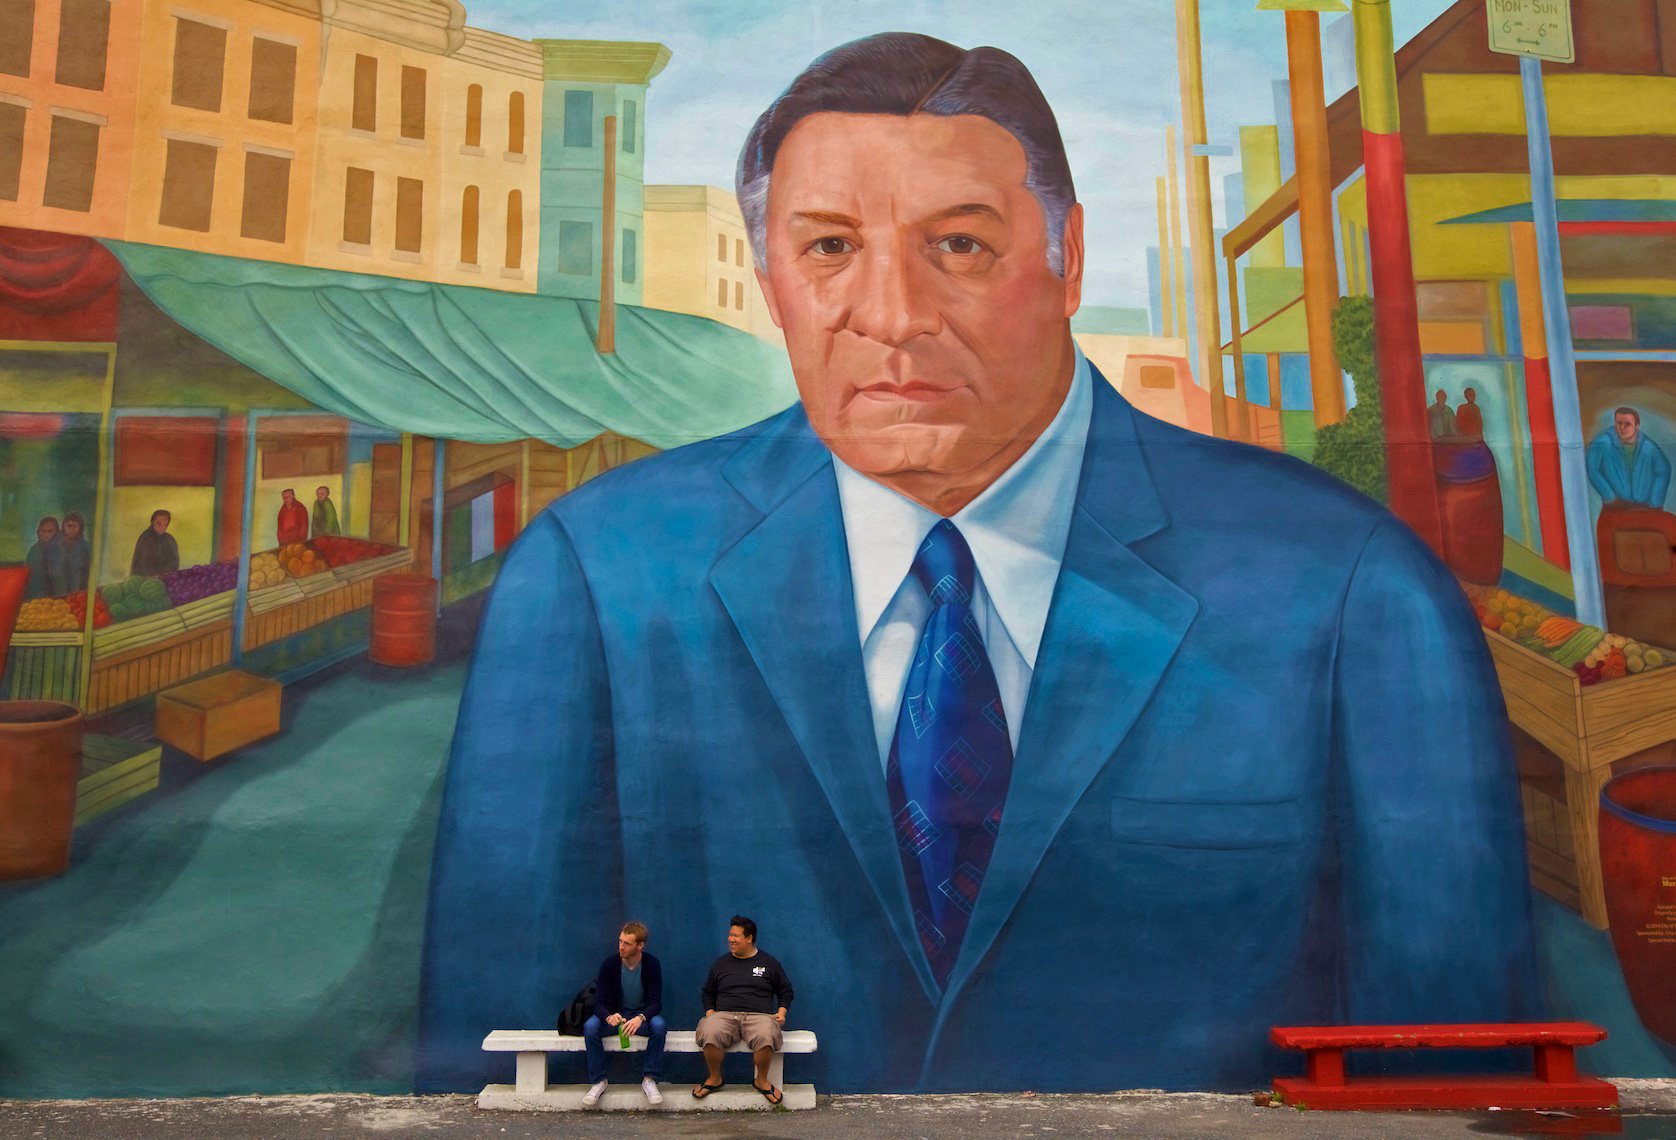 Mayor Frank Rizzo Mural, South Philadelphia